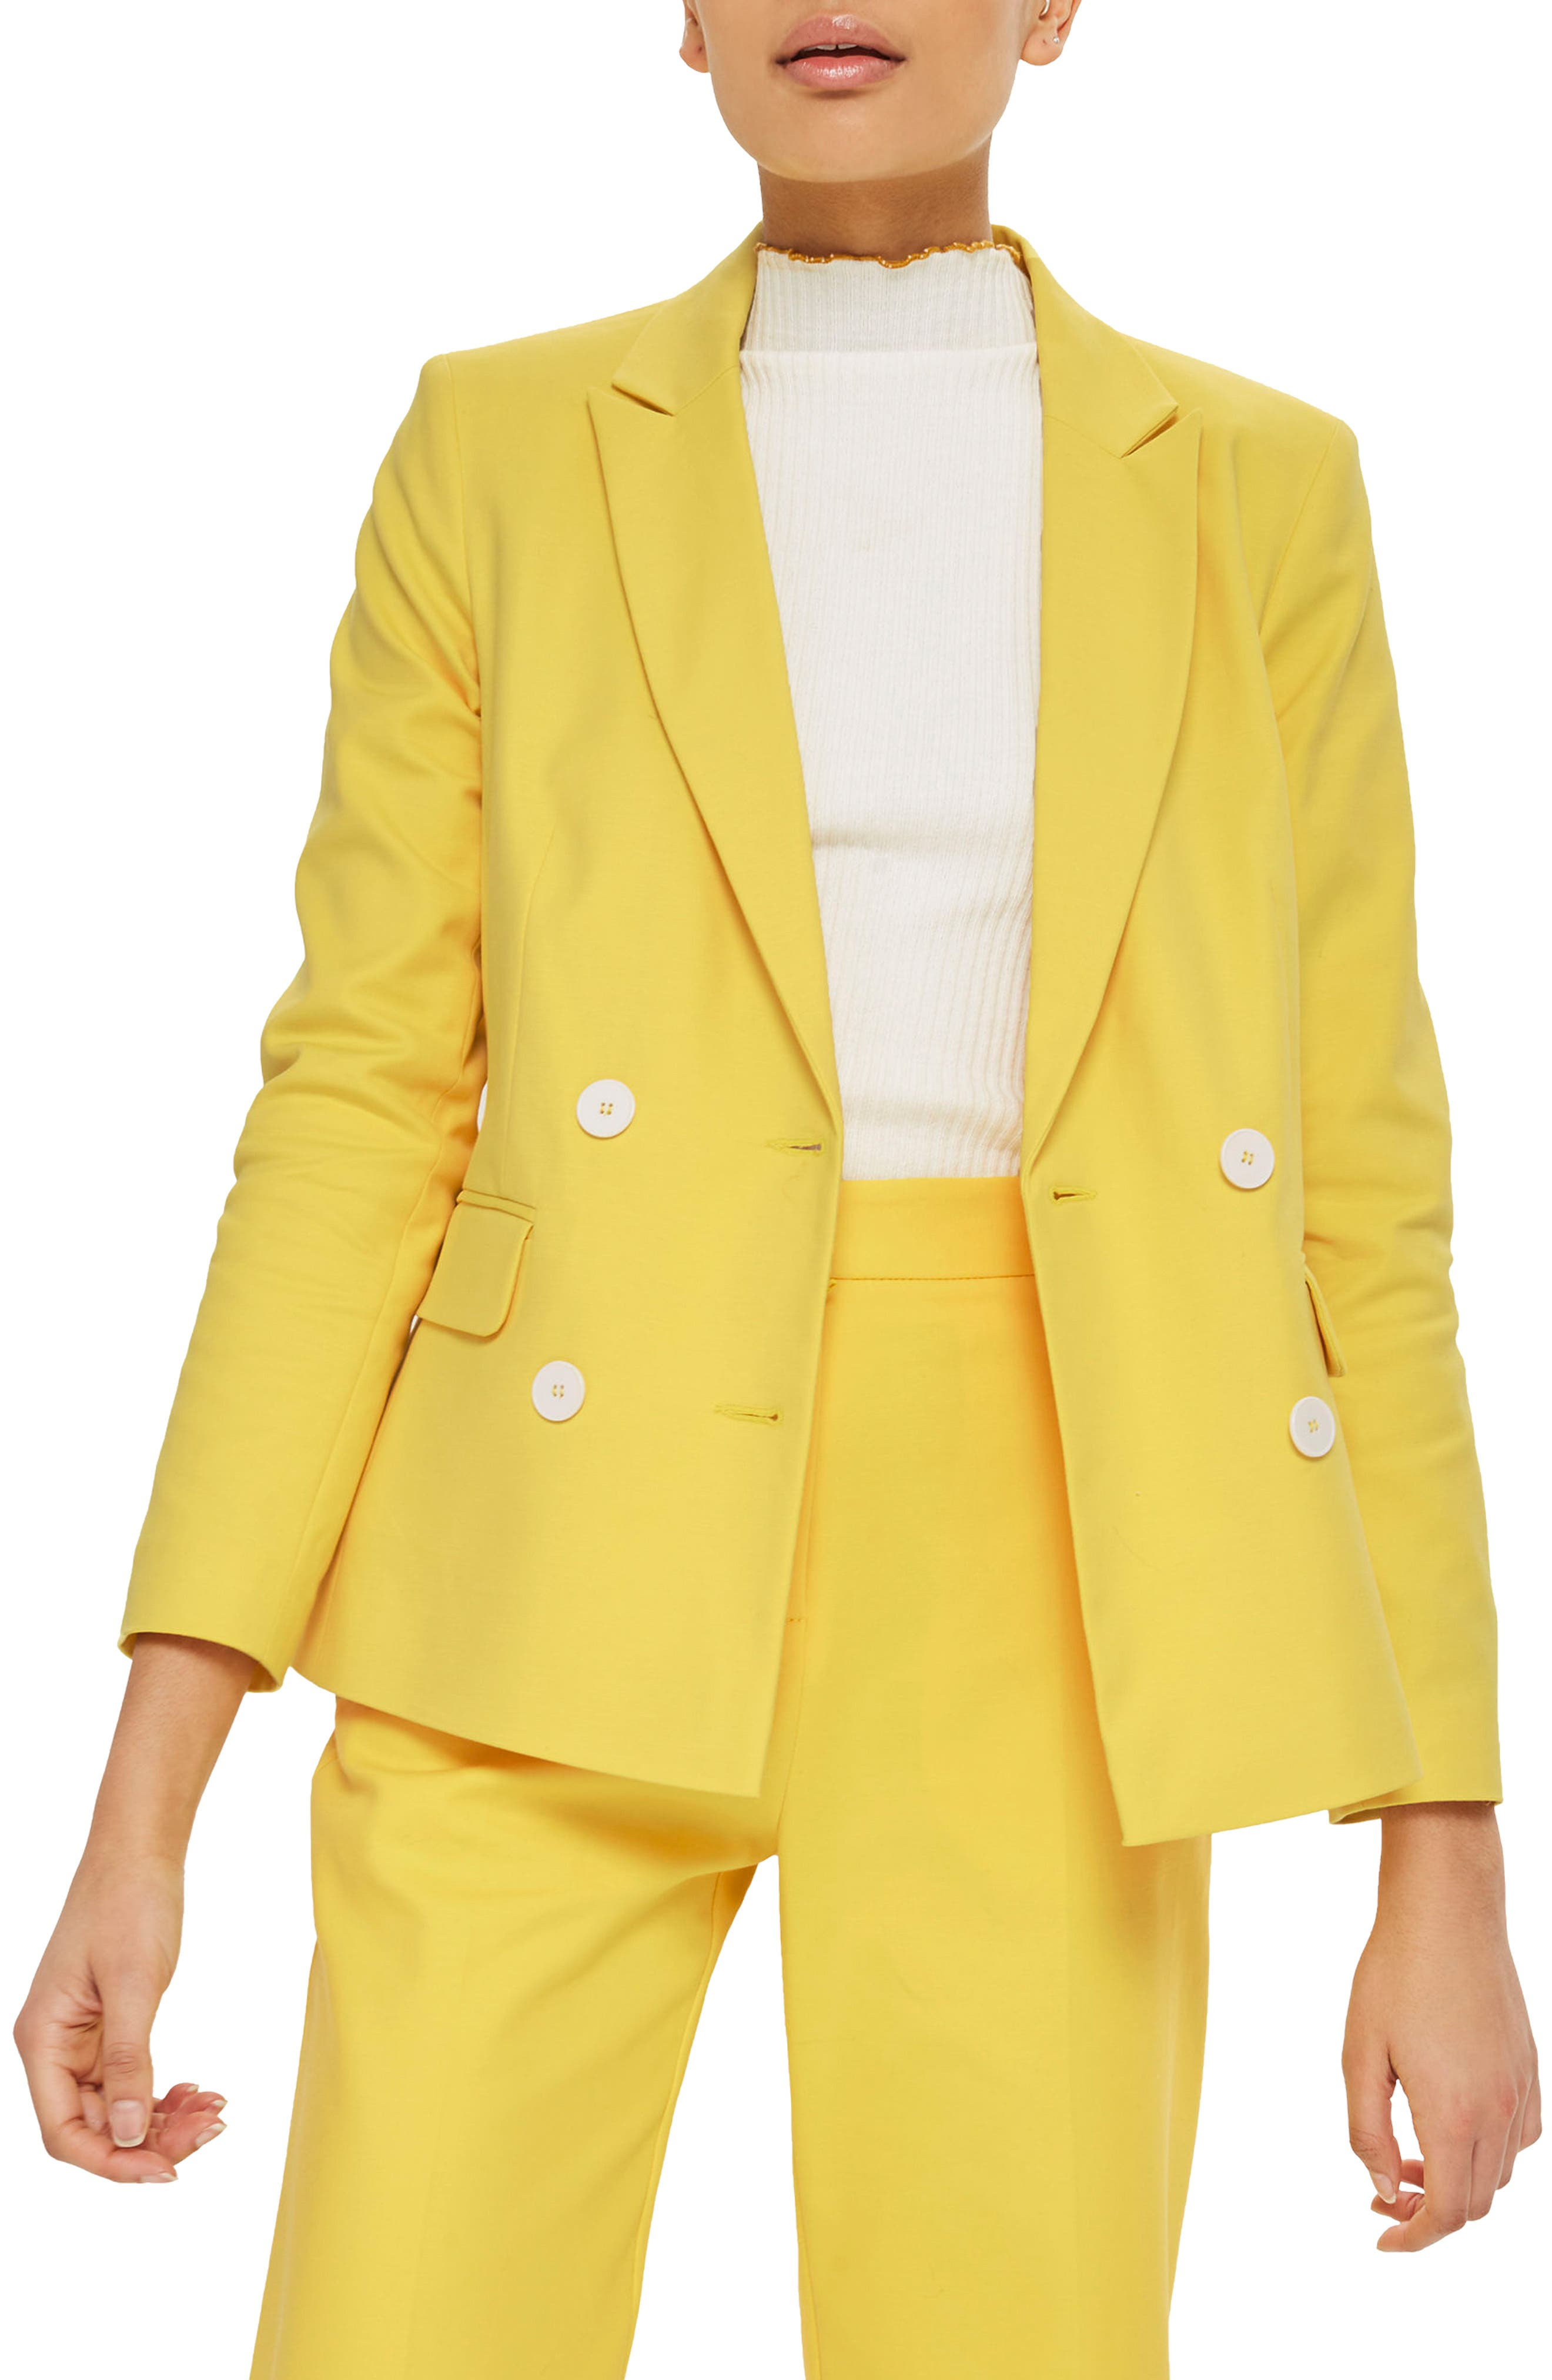 Milly Double Breasted Suit Jacket,                         Main,                         color, Yellow